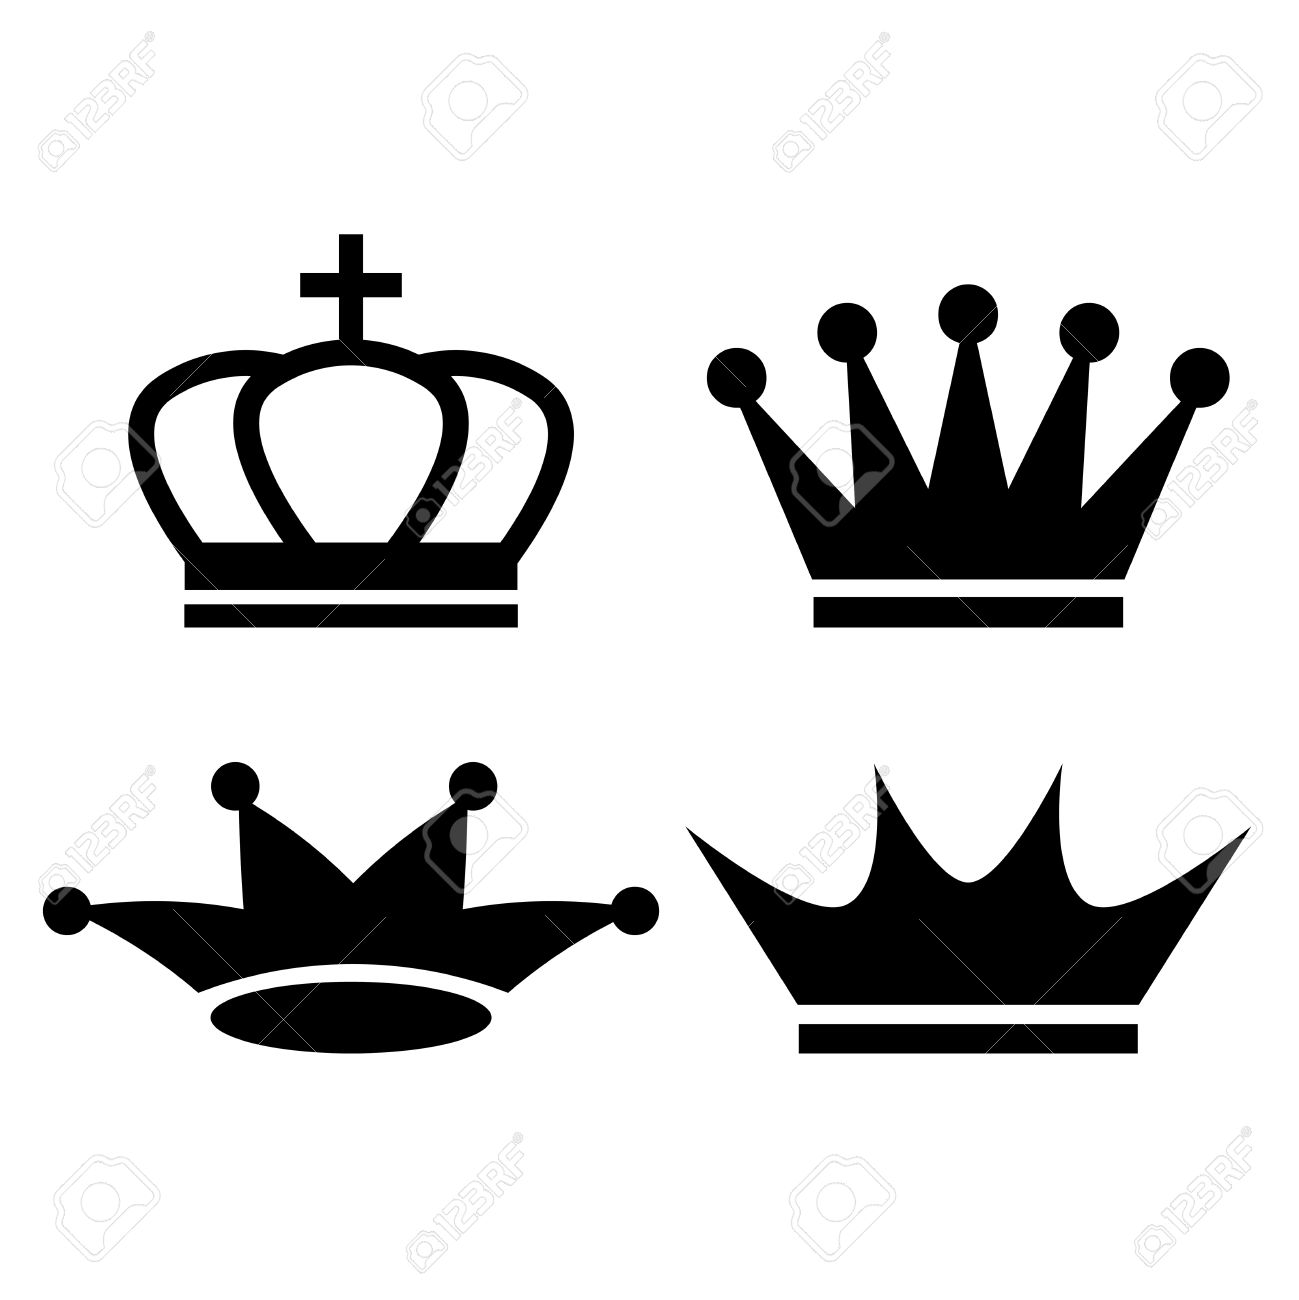 King crown icon royalty free cliparts vectors and stock king crown icon stock vector 36983618 altavistaventures Gallery